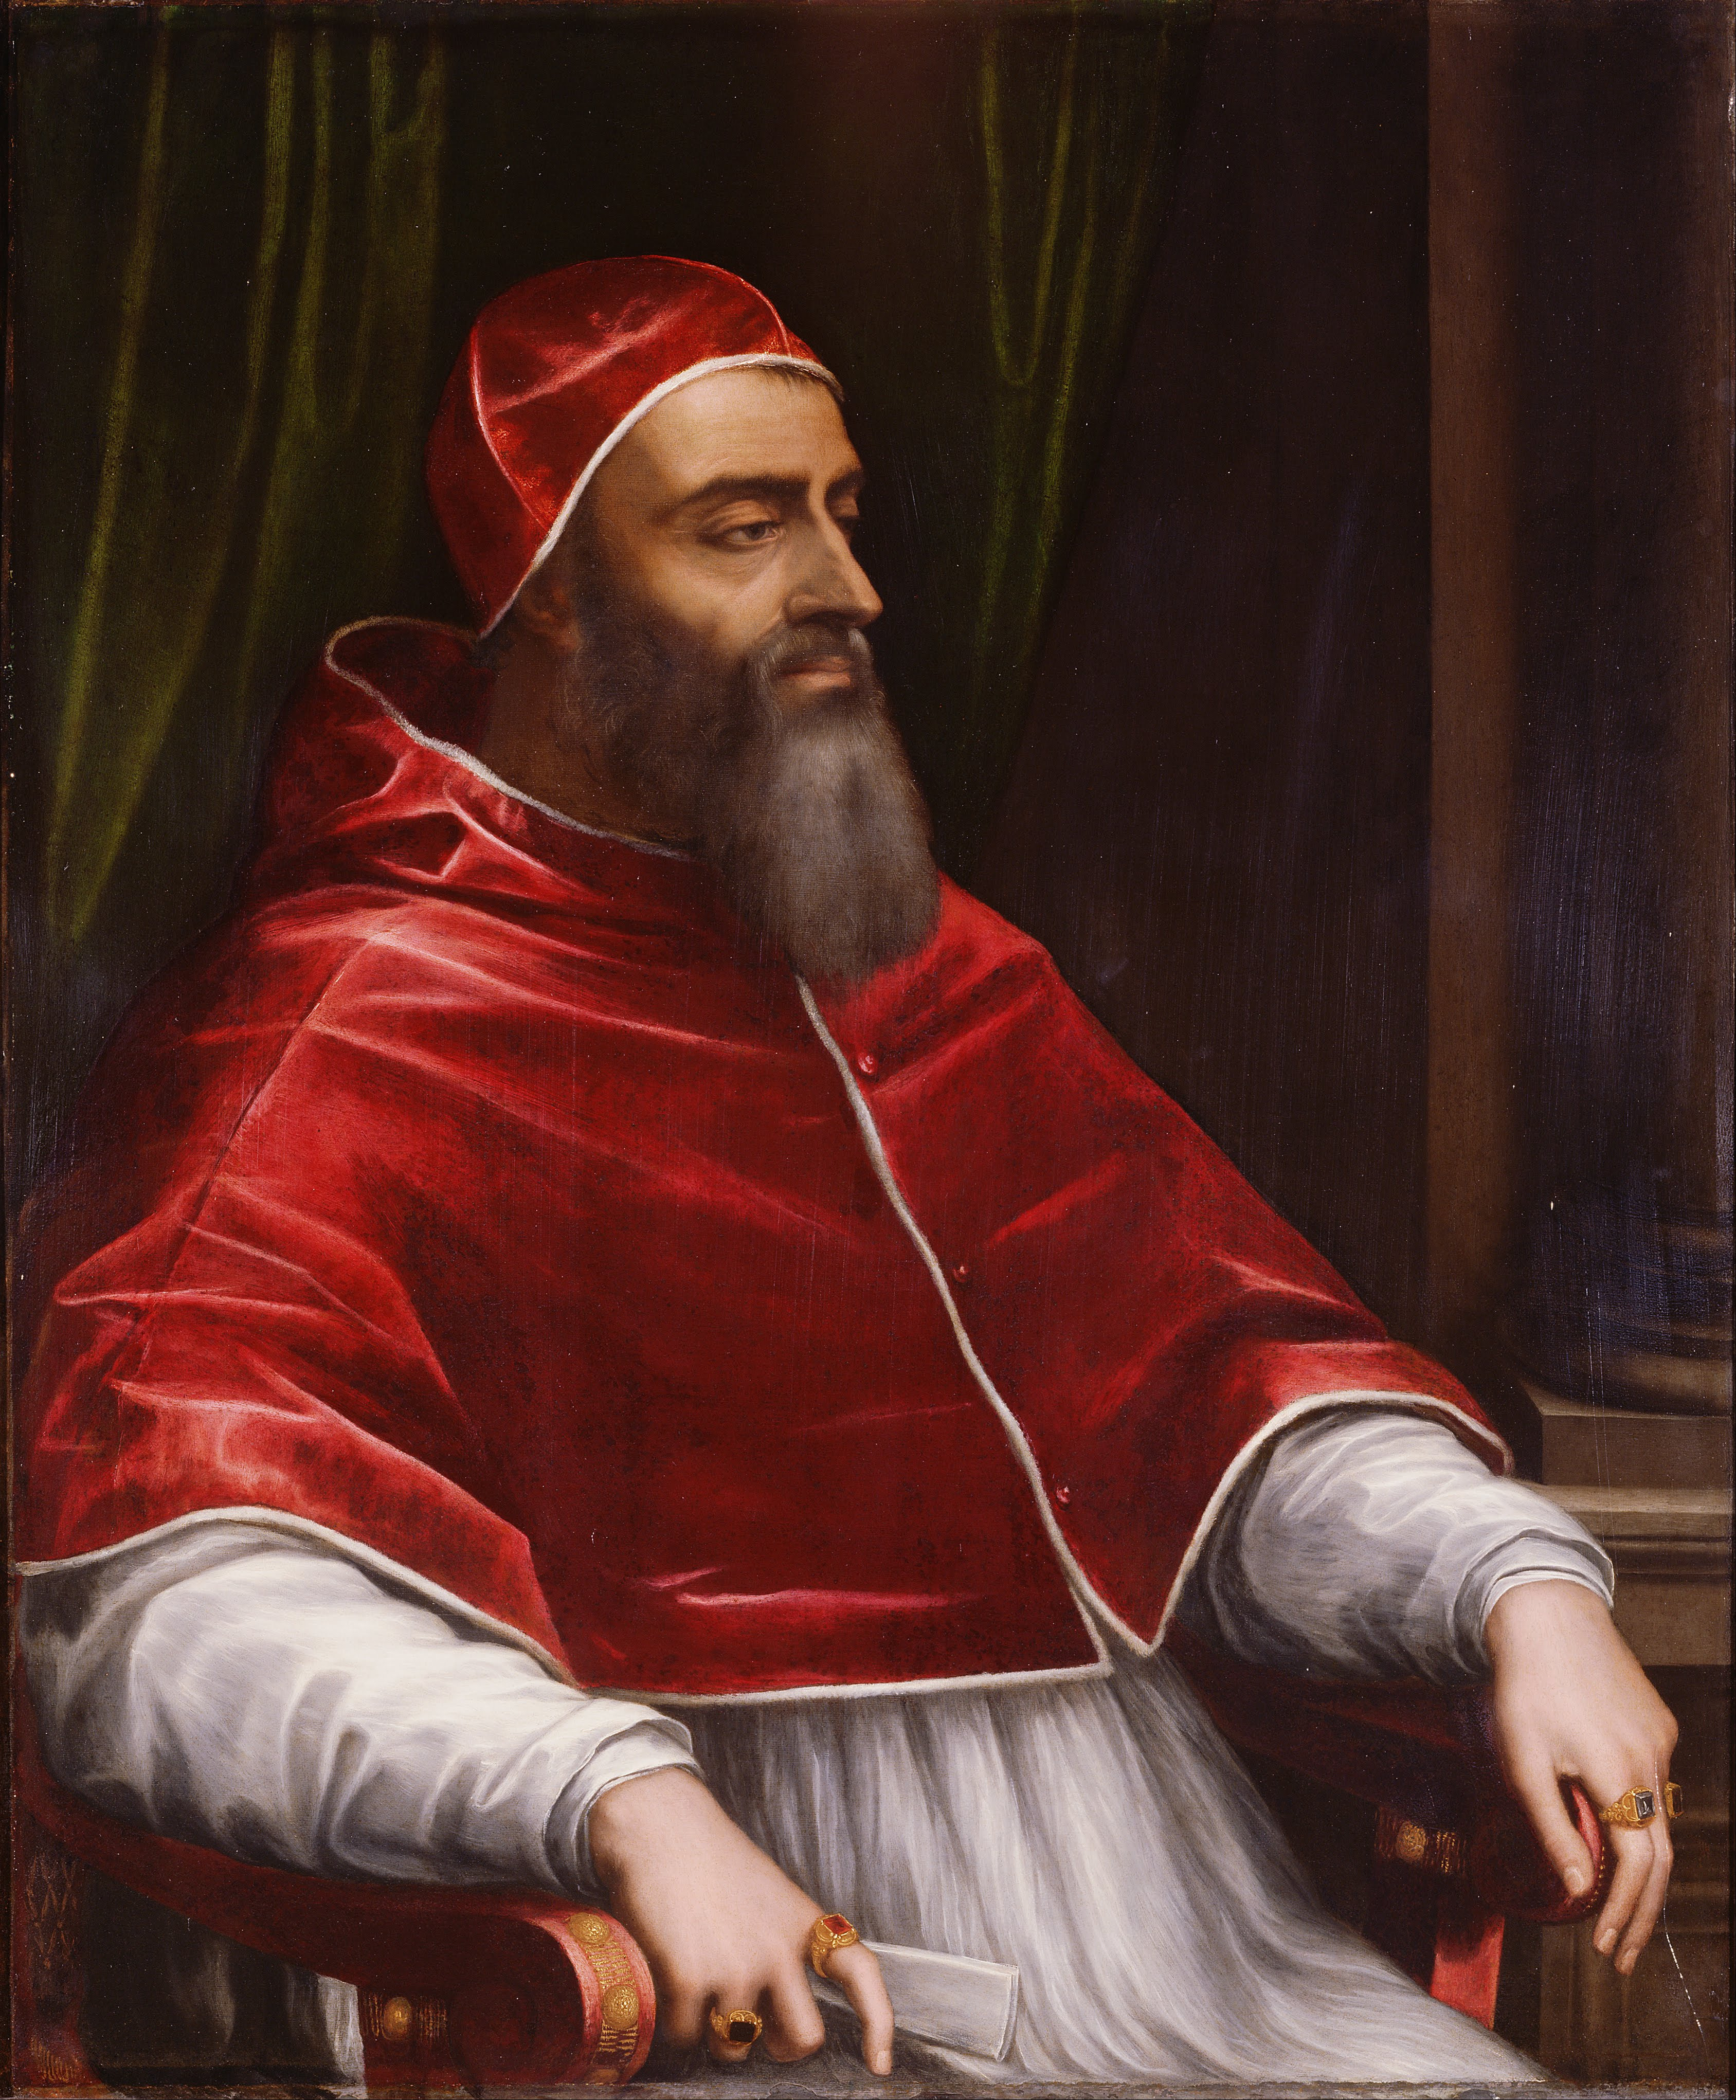 pope clement vii Clement vii (latin: clemens septimus 26 may 1478 - 25 september 1534), born giulio di giuliano de' medici, was an italian cleric of the roman catholic churchhe was the 220th pope from 1523 to 1534.